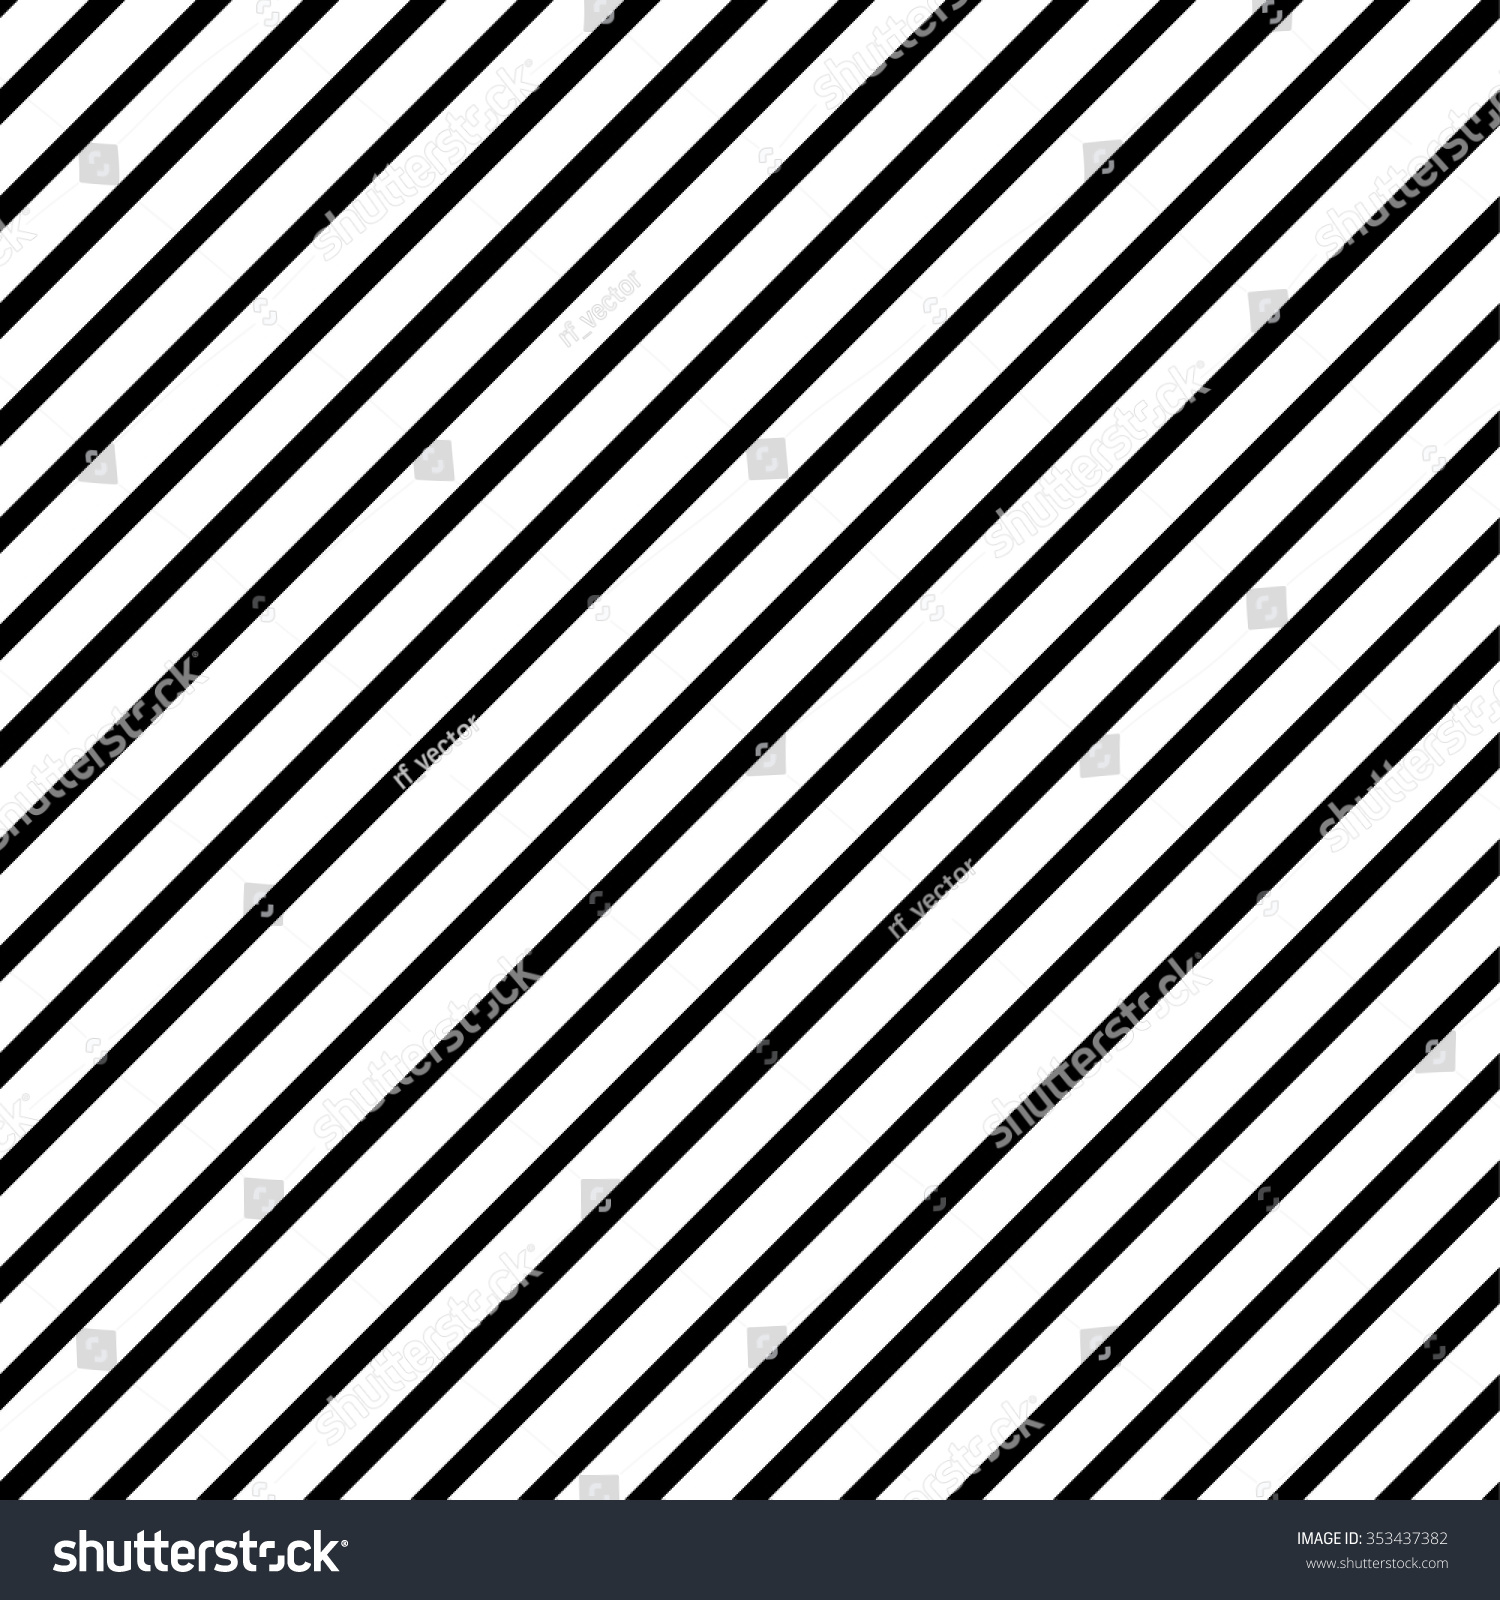 Line Texture Vector : Seamless repeatable geometric pattern diagonal lines stock